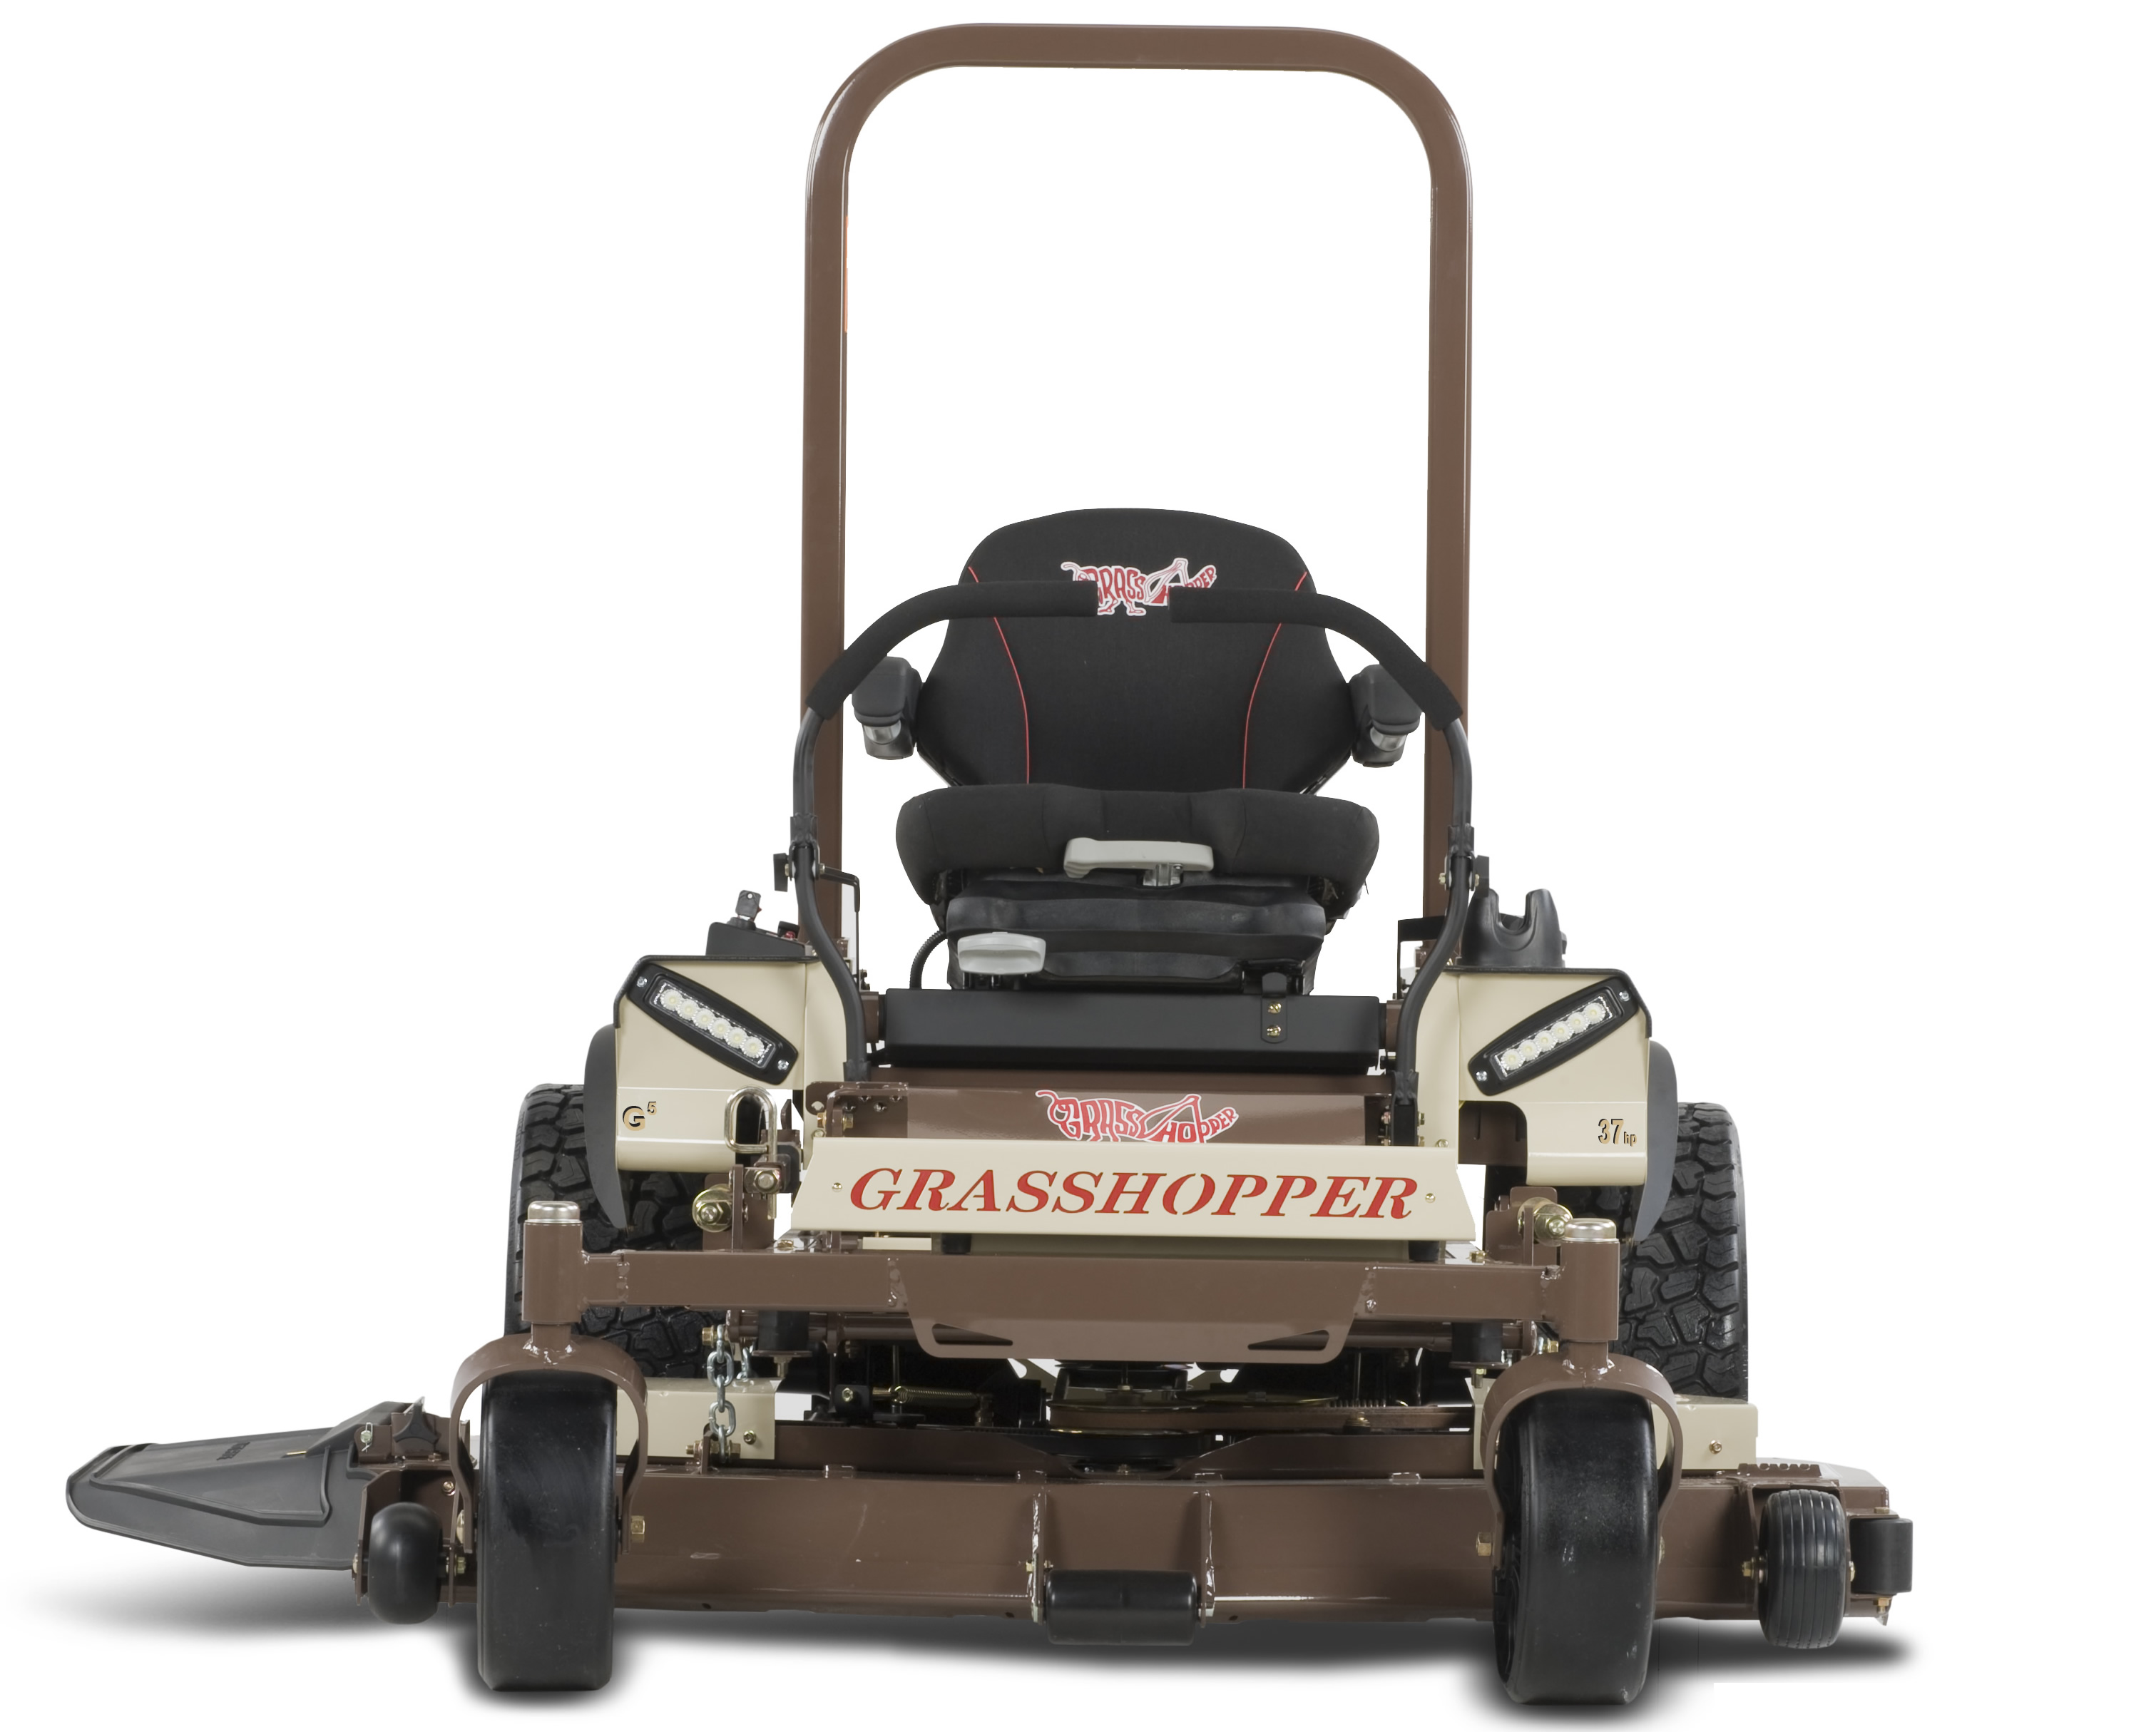 Mower Rental - Grasshopper 337G5 61-inch Zero Turn with 37HP Vanguard Engine